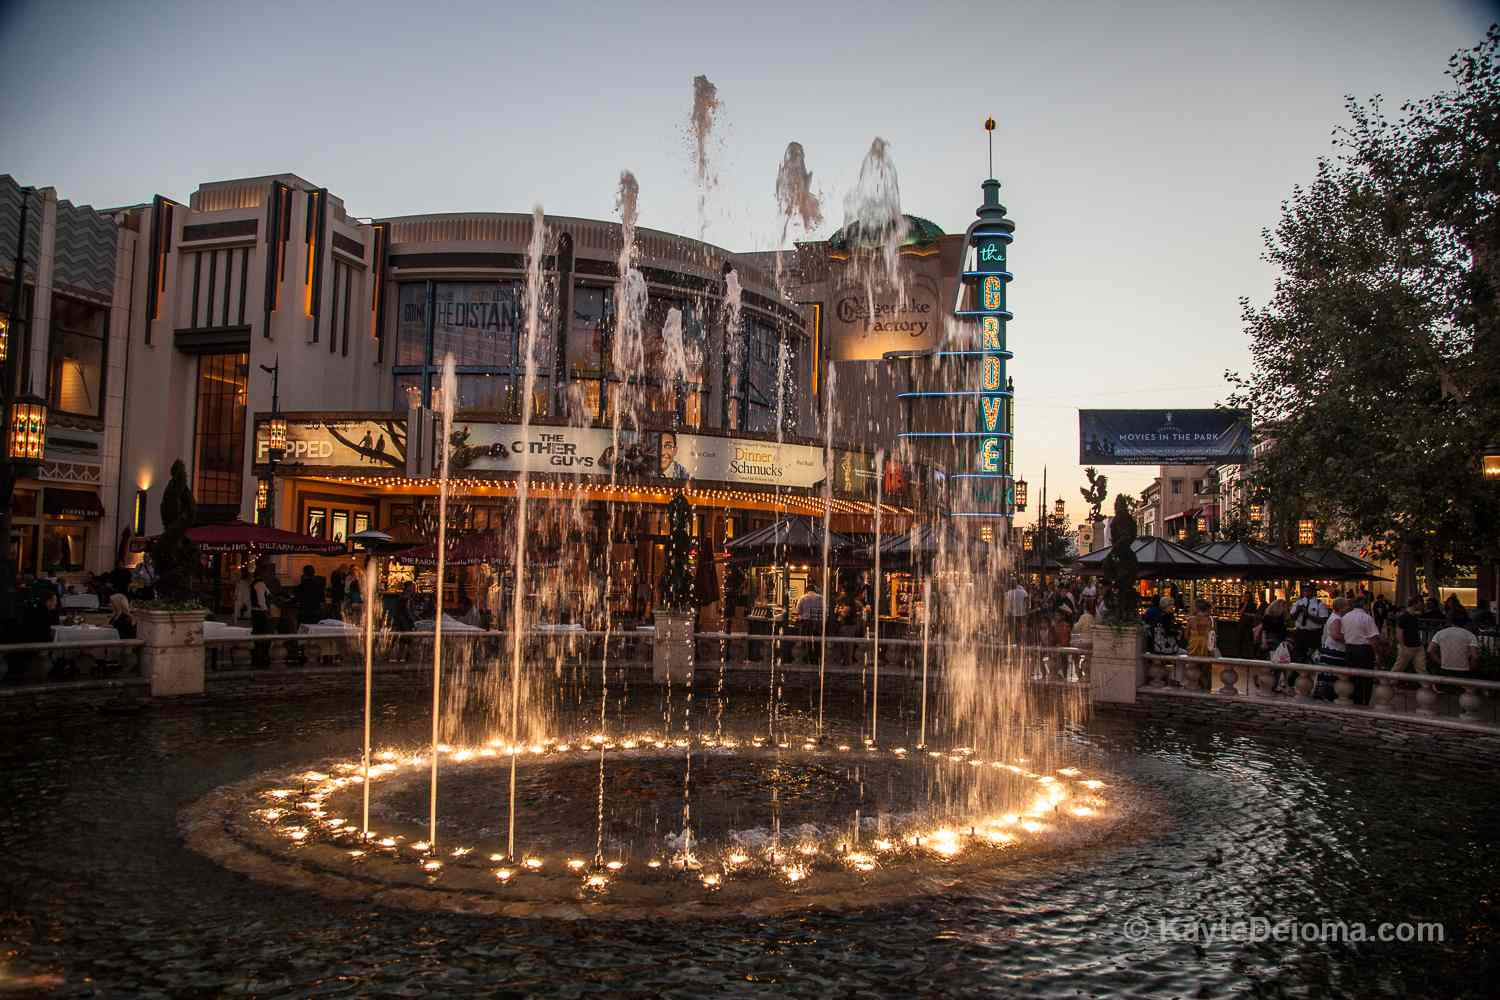 The Dancing Fountain at The Grove in Los Angeles